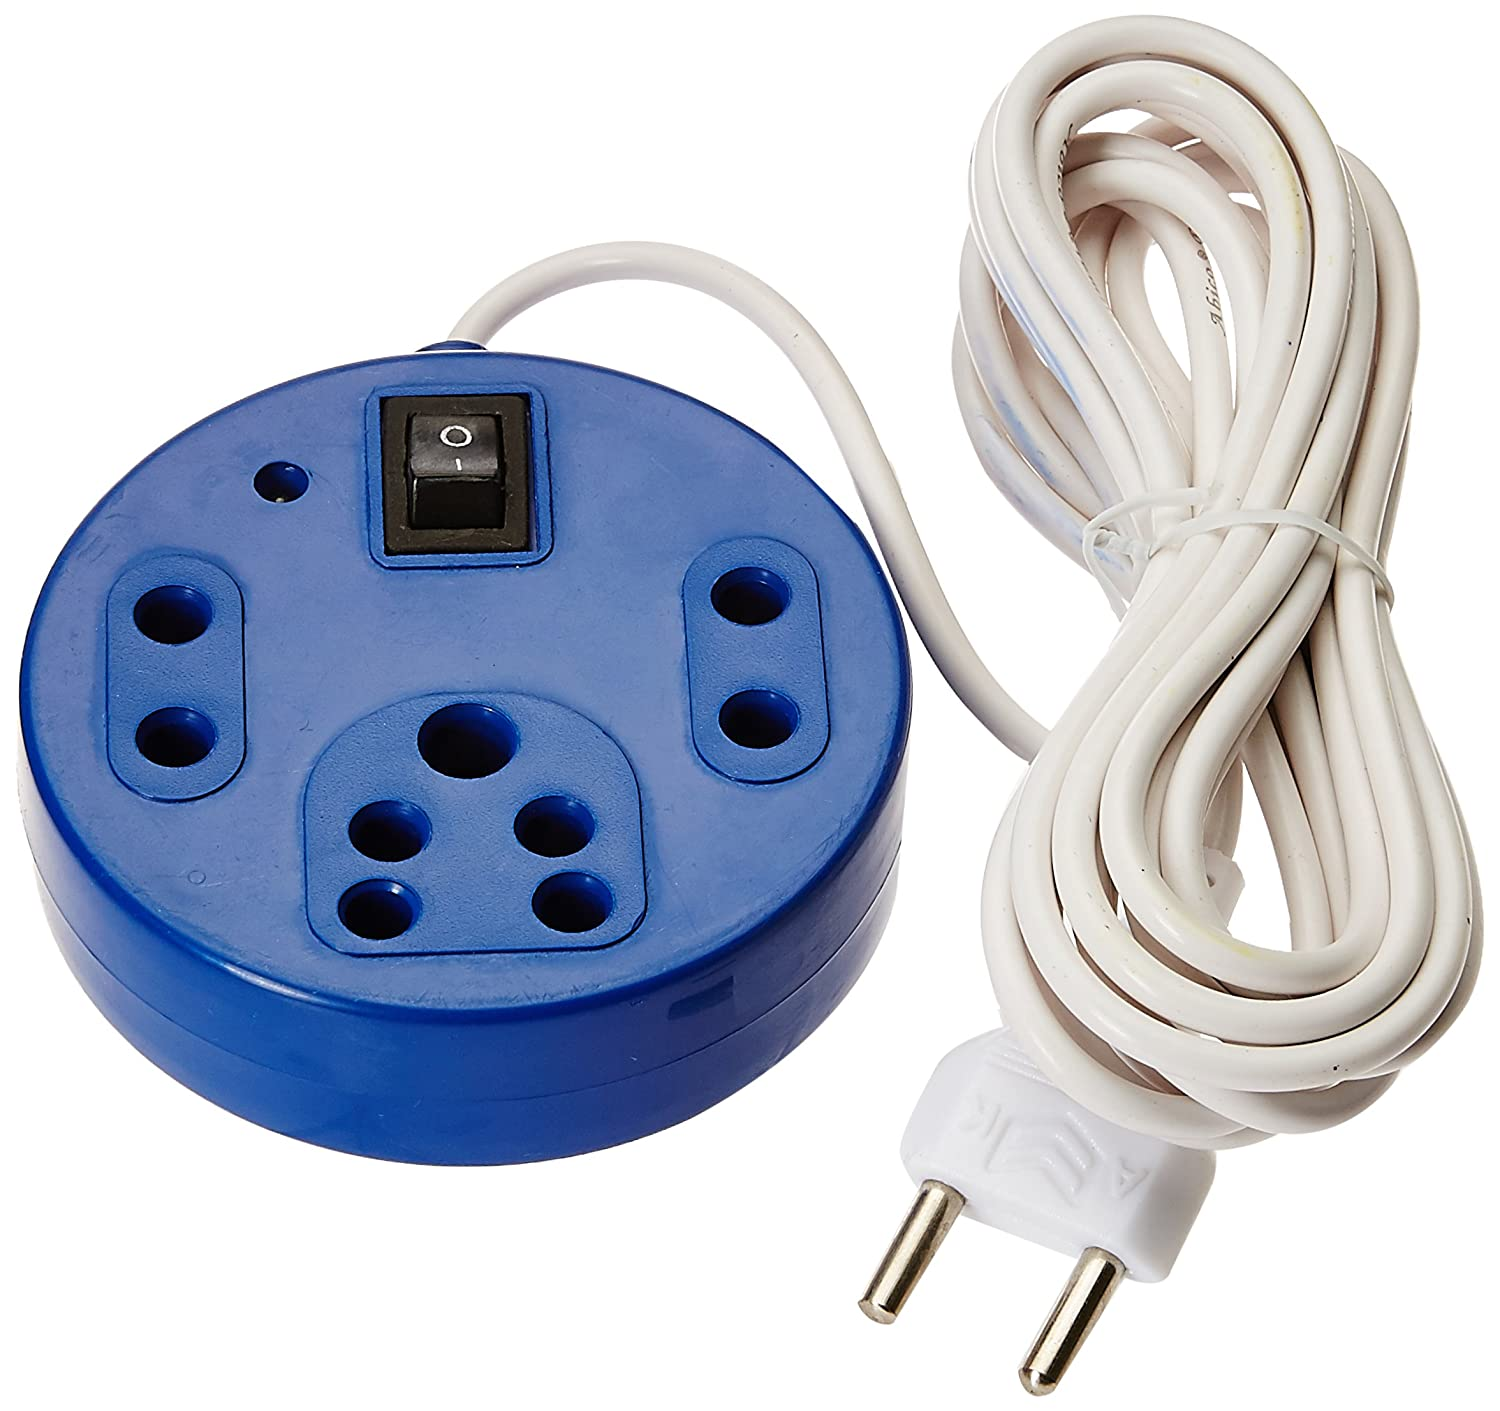 generic 3+1 Round Shape extension cord With 3 Meter Wire (2 Pin & 3 ...